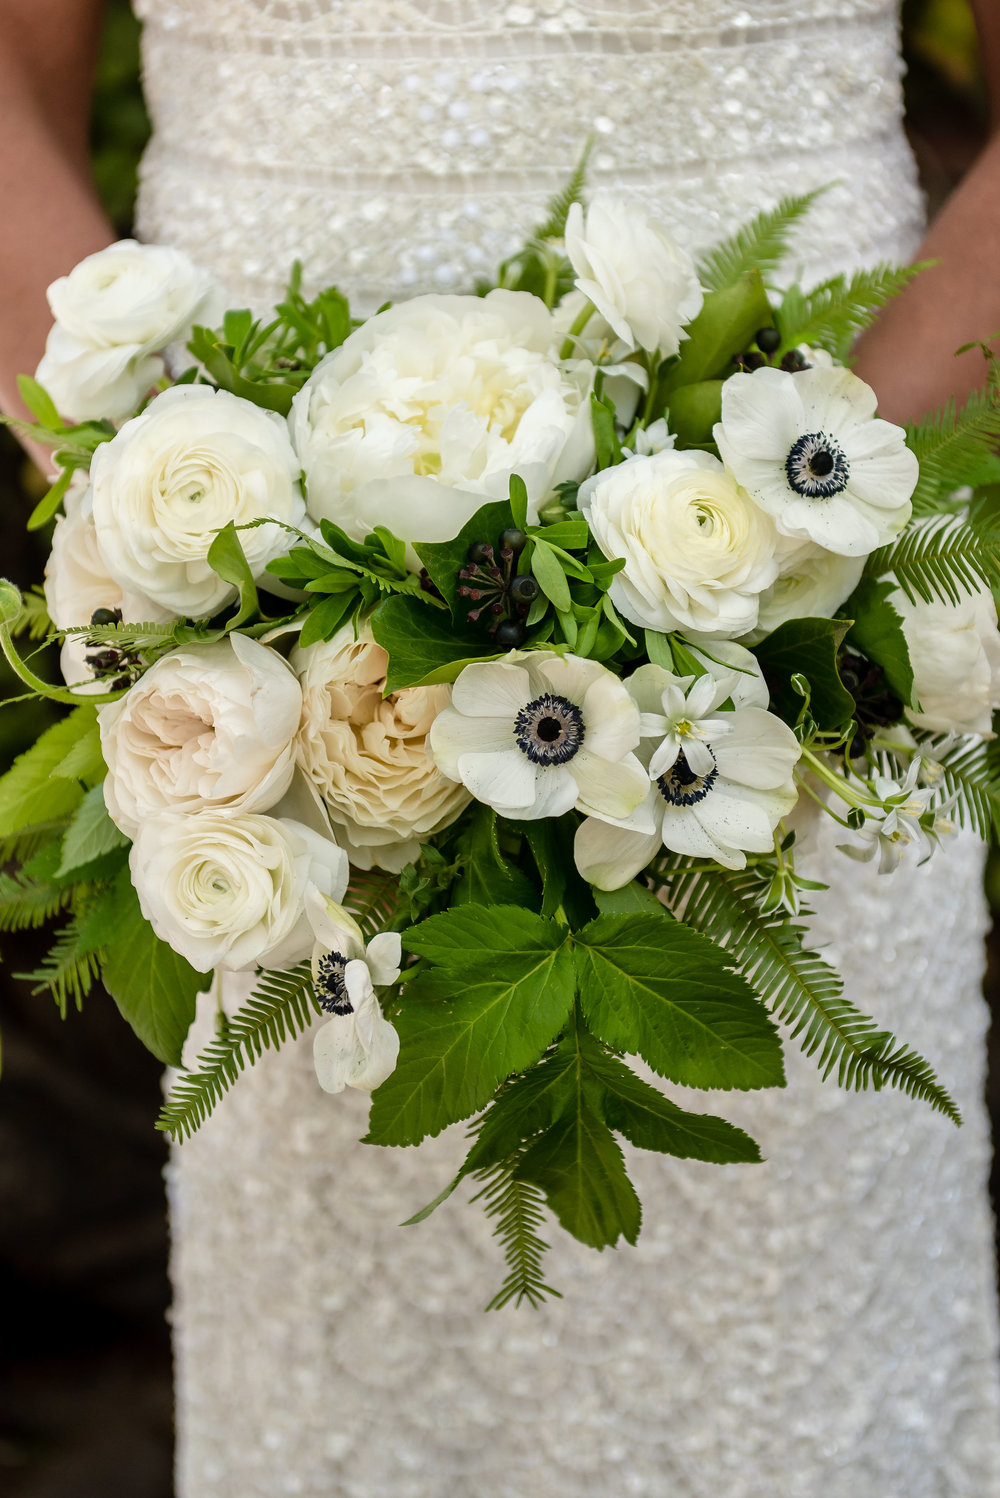 Green and White Wedding Bouquet.jpg